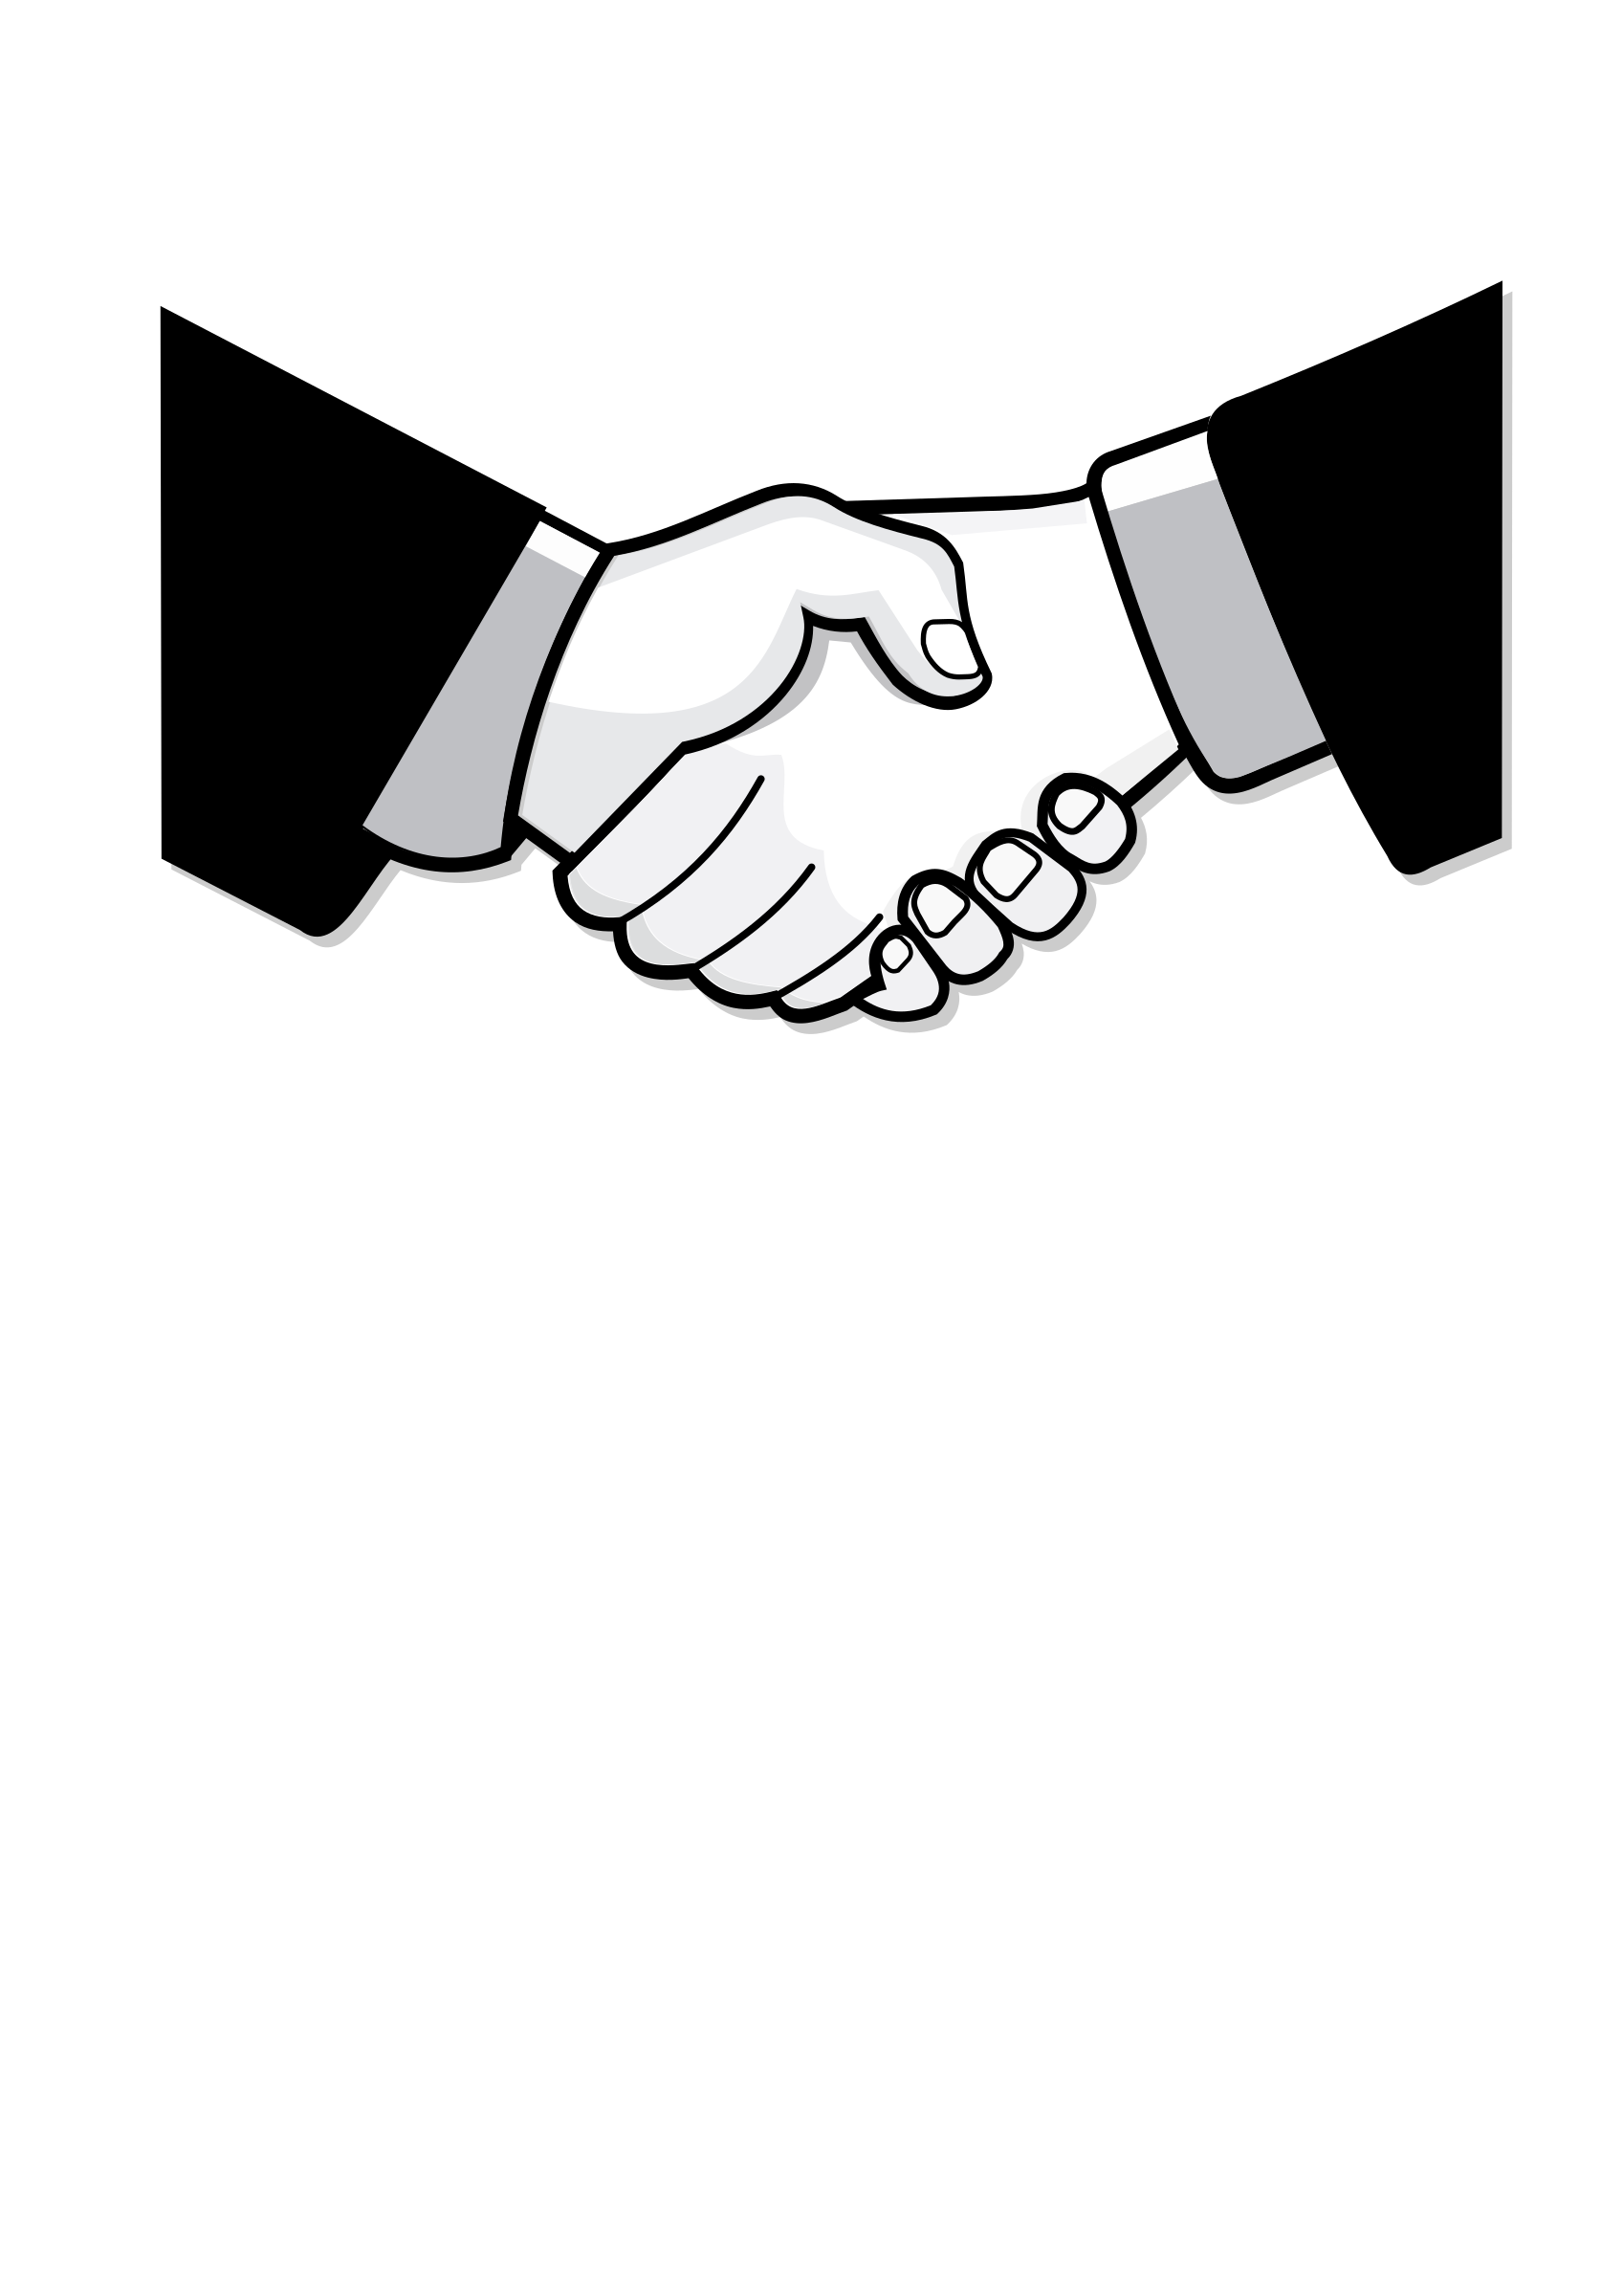 Handshake drawing at getdrawings. Thumb clipart sketch